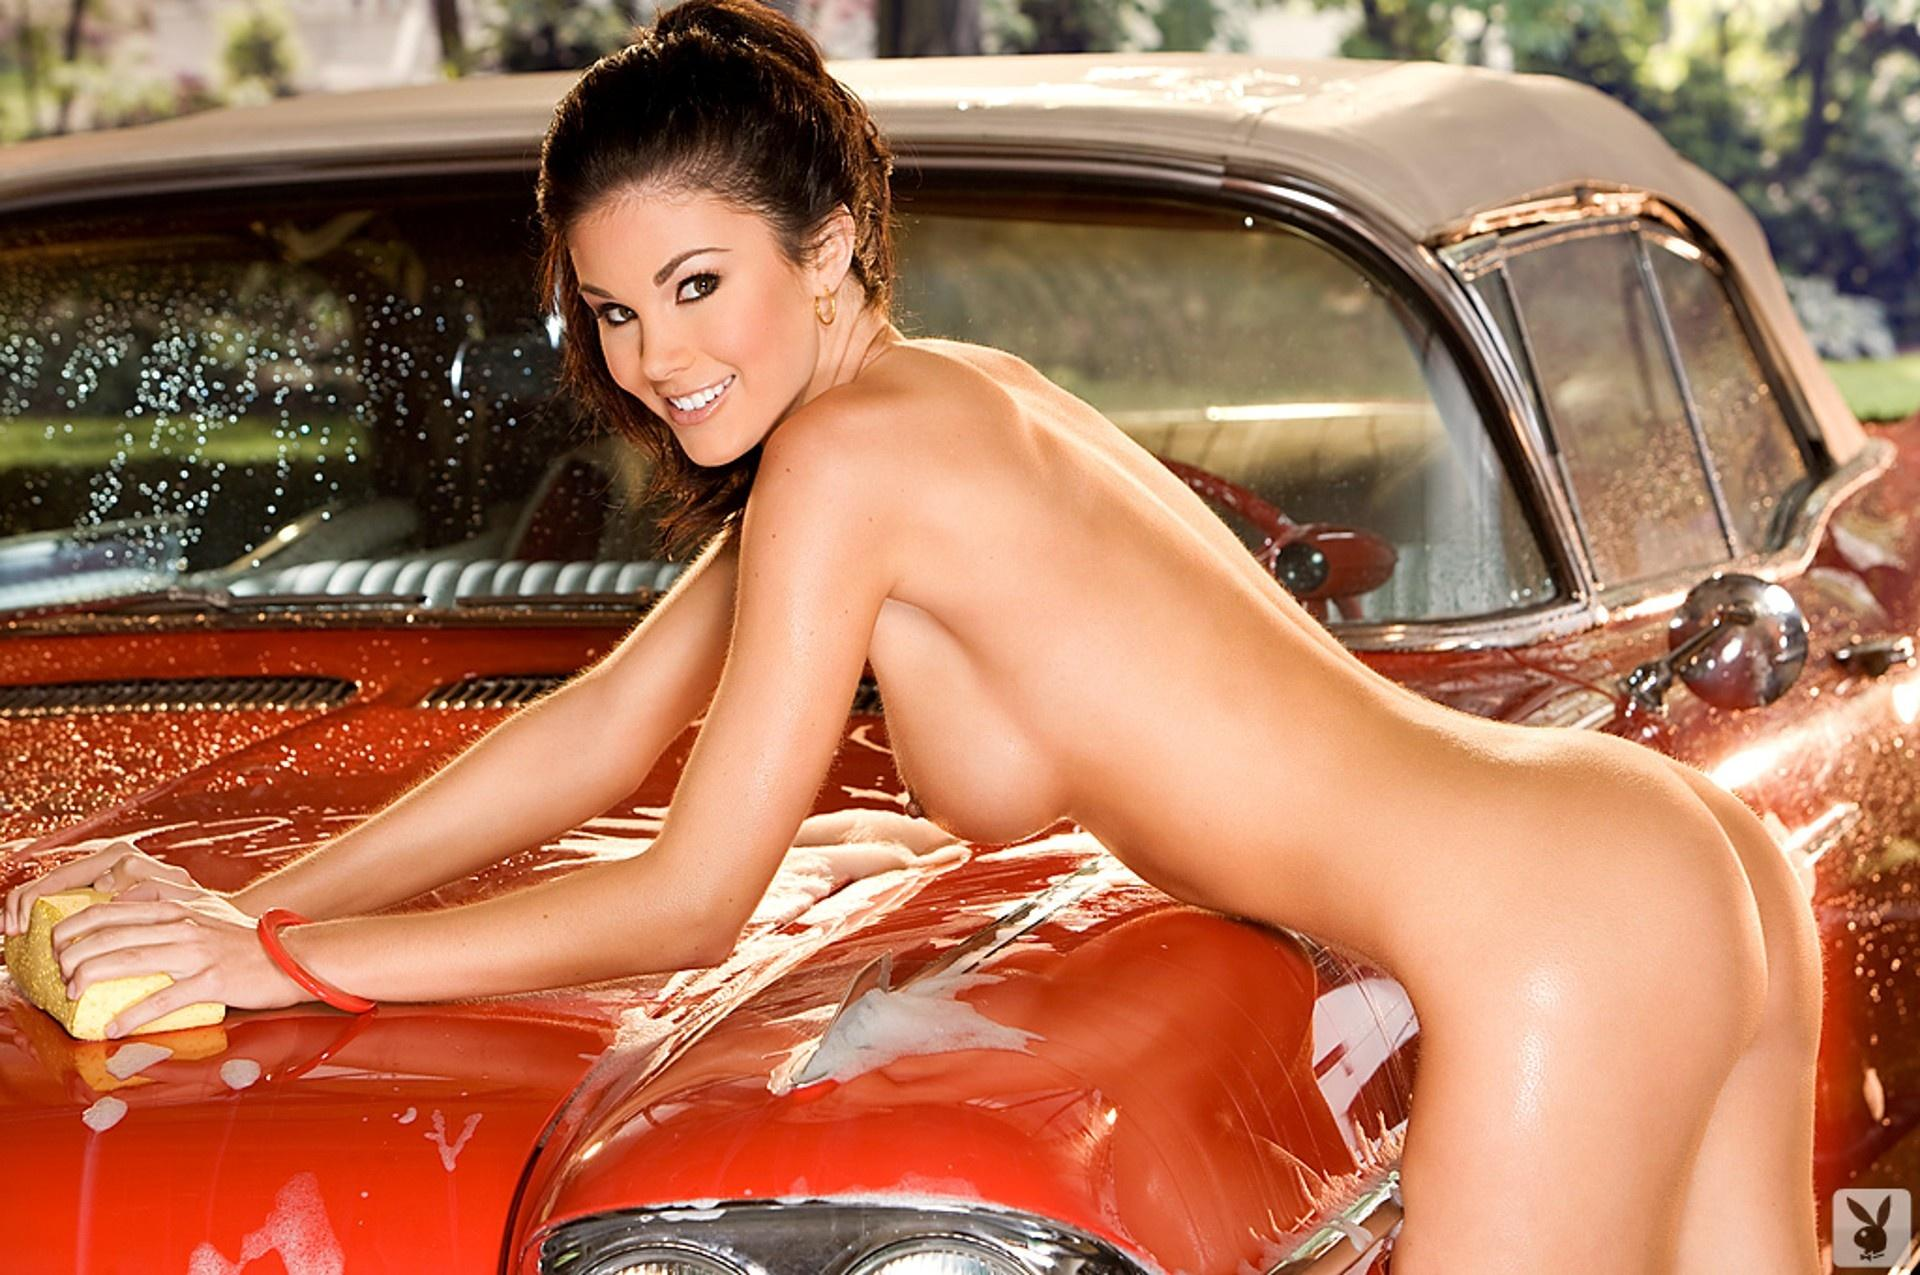 naked-girl-chevy-girls